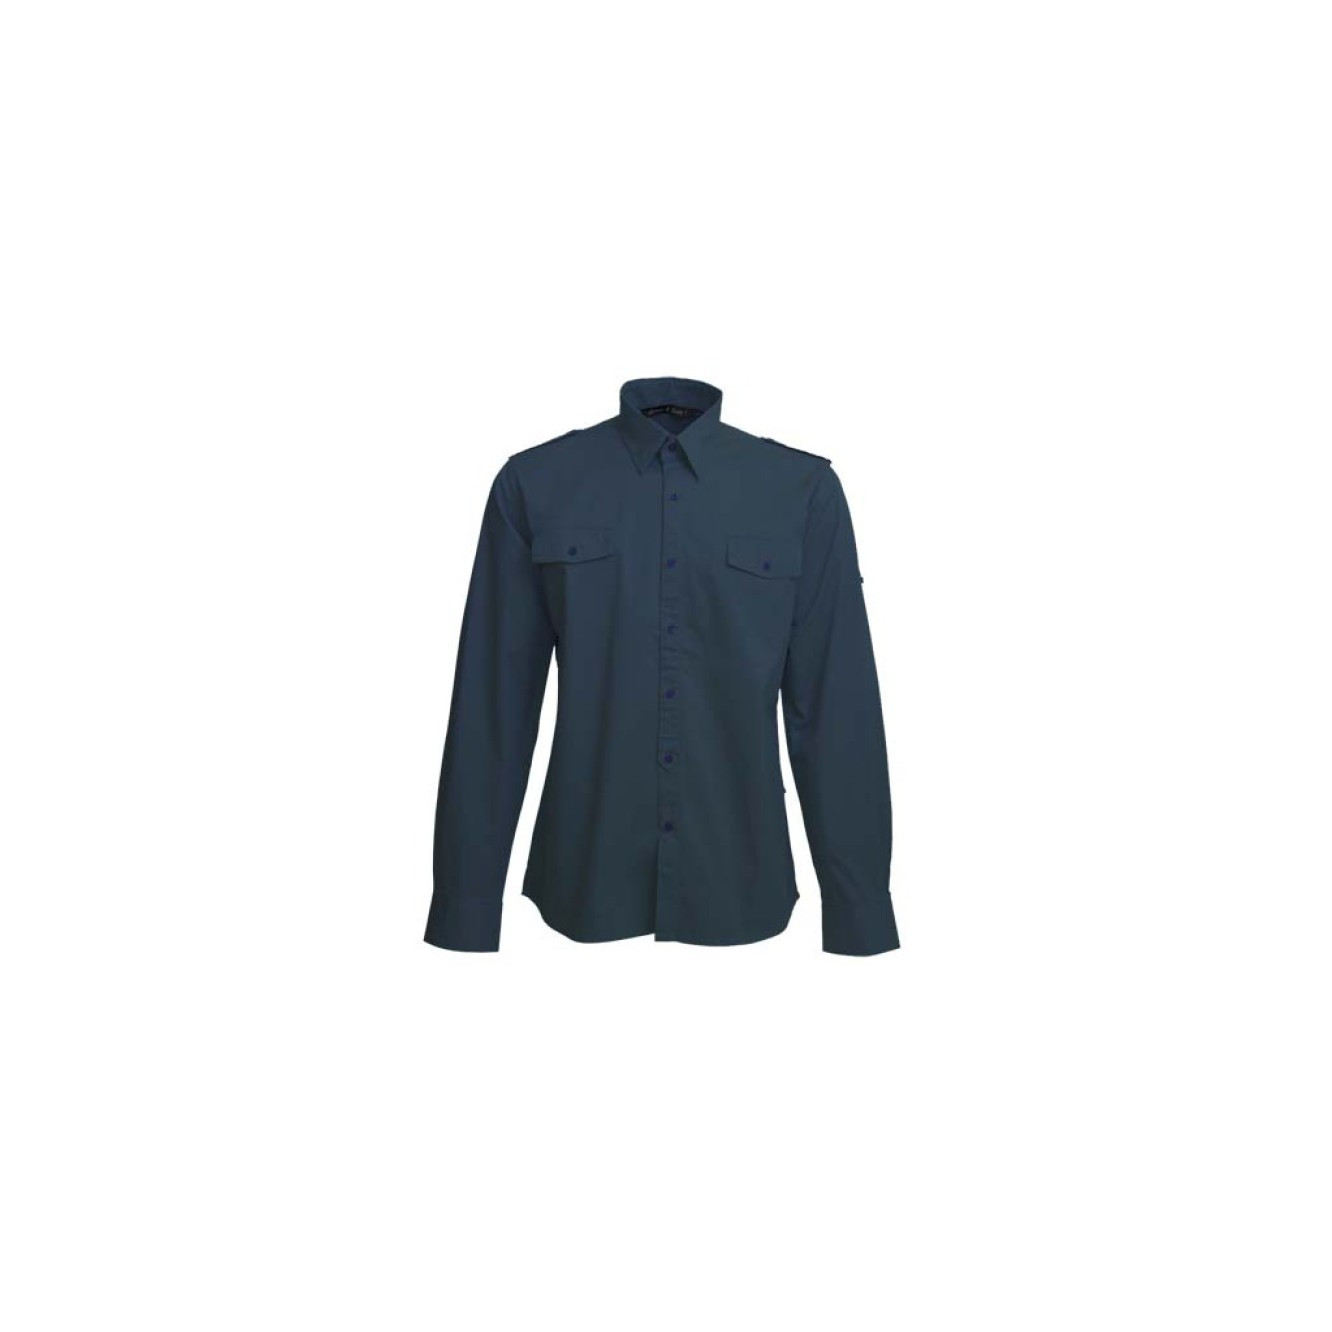 Shirt twill ls for him